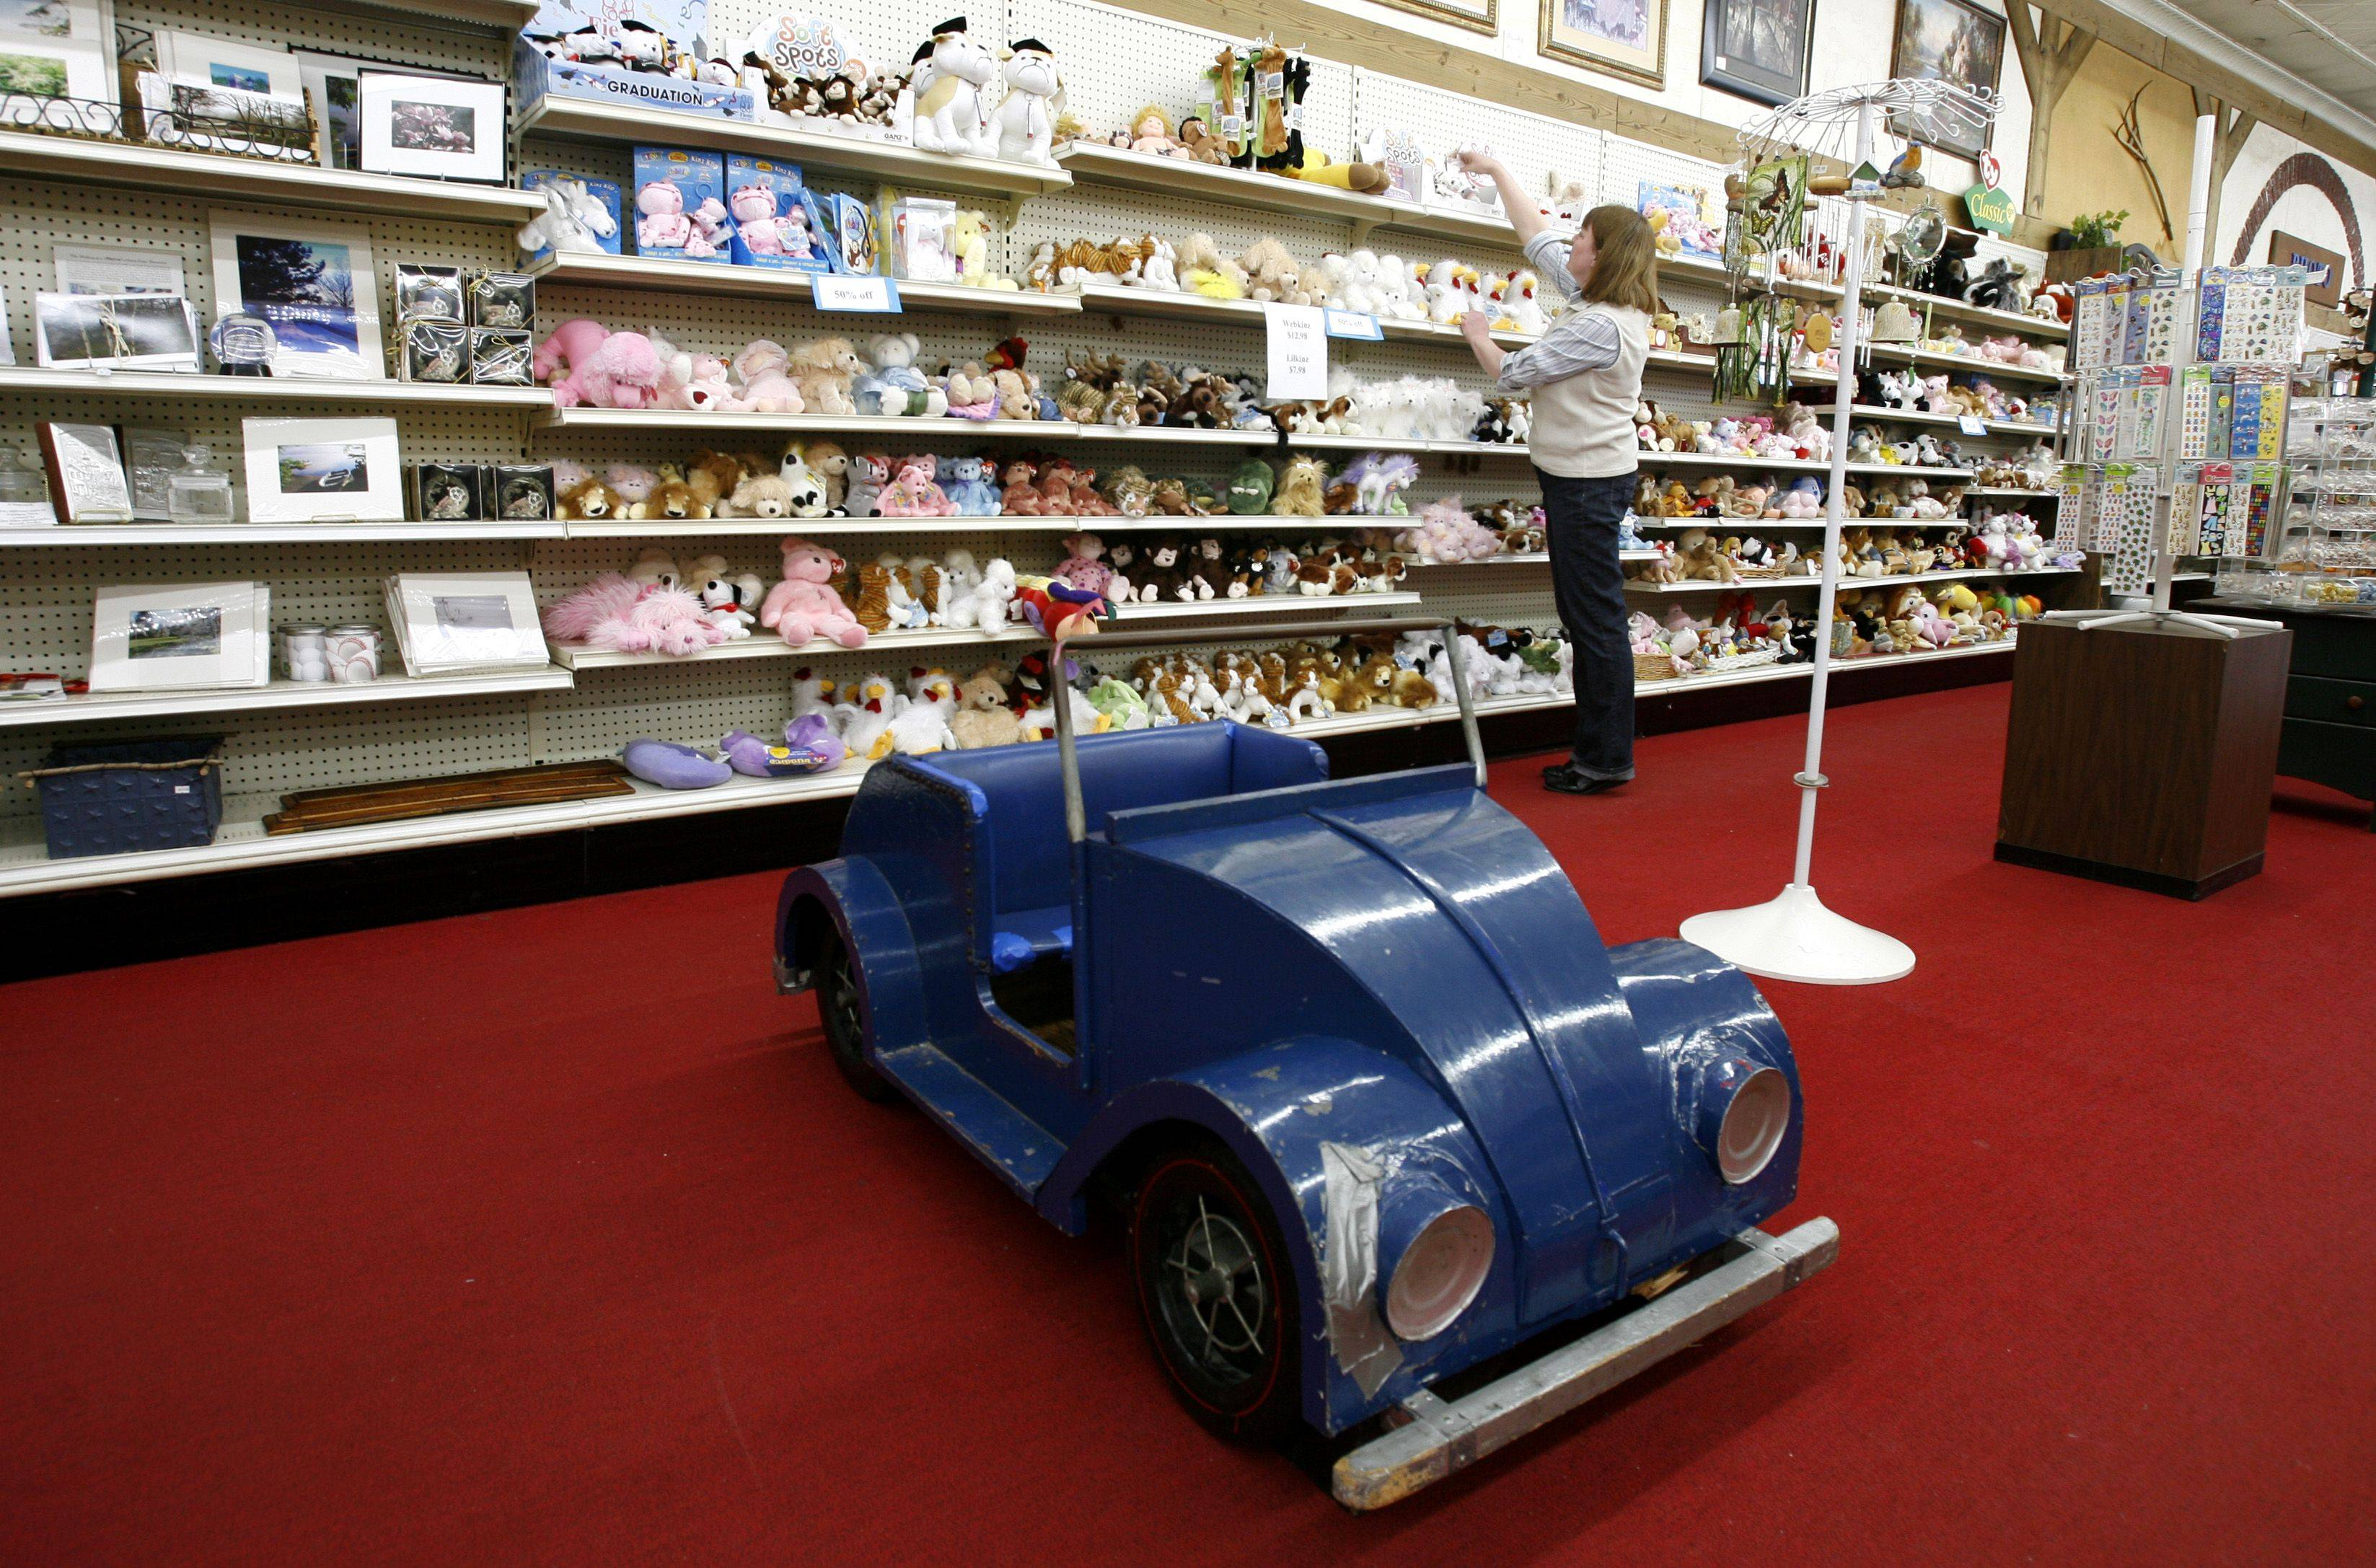 Schmid's, a downtown Glen Ellyn business for 44 years, will be closing its doors March 19. Children often would sit in the store's miniature Volkswagen Beetle, which is modeled off its old delivery car.